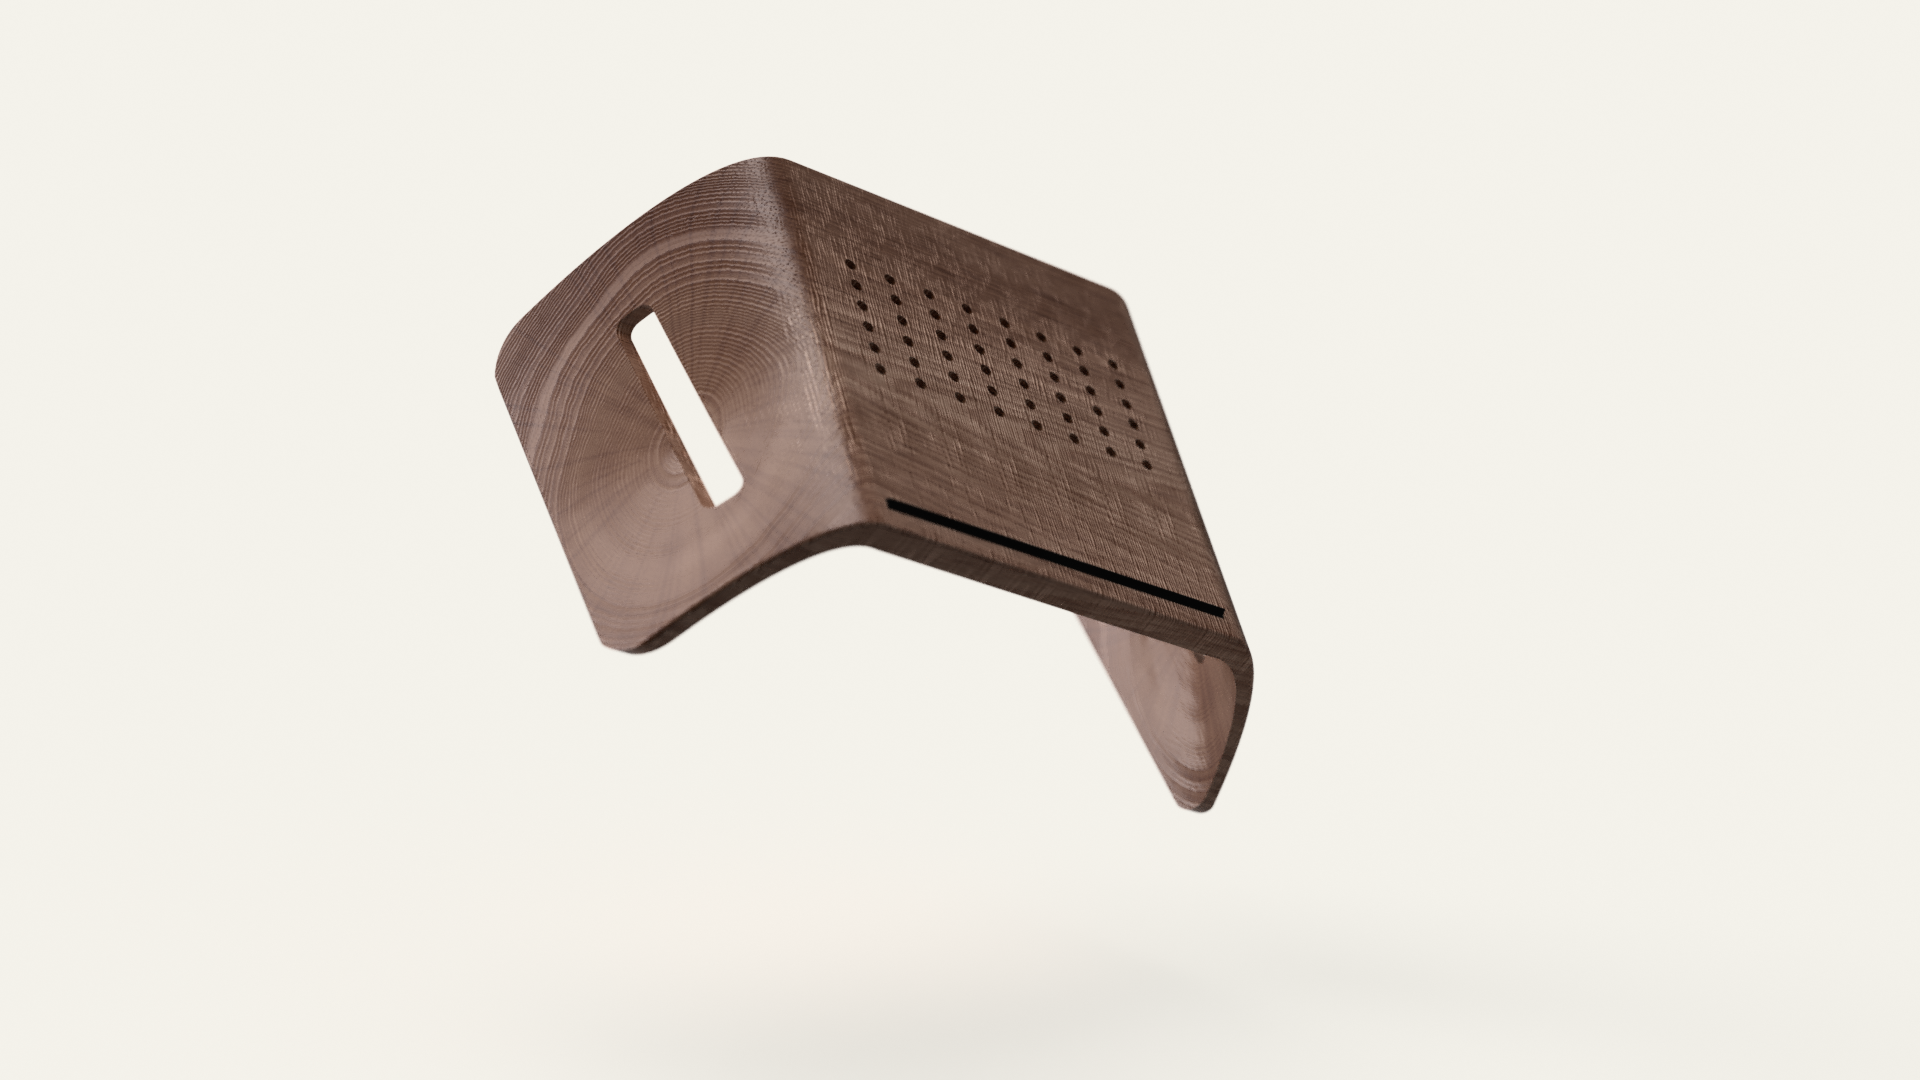 Laptop stand - July 2017 / Designed during my time at Pier 9 with CNC 5-axis CAM programmed in for walnut.Designed and rendered on Fusion 360